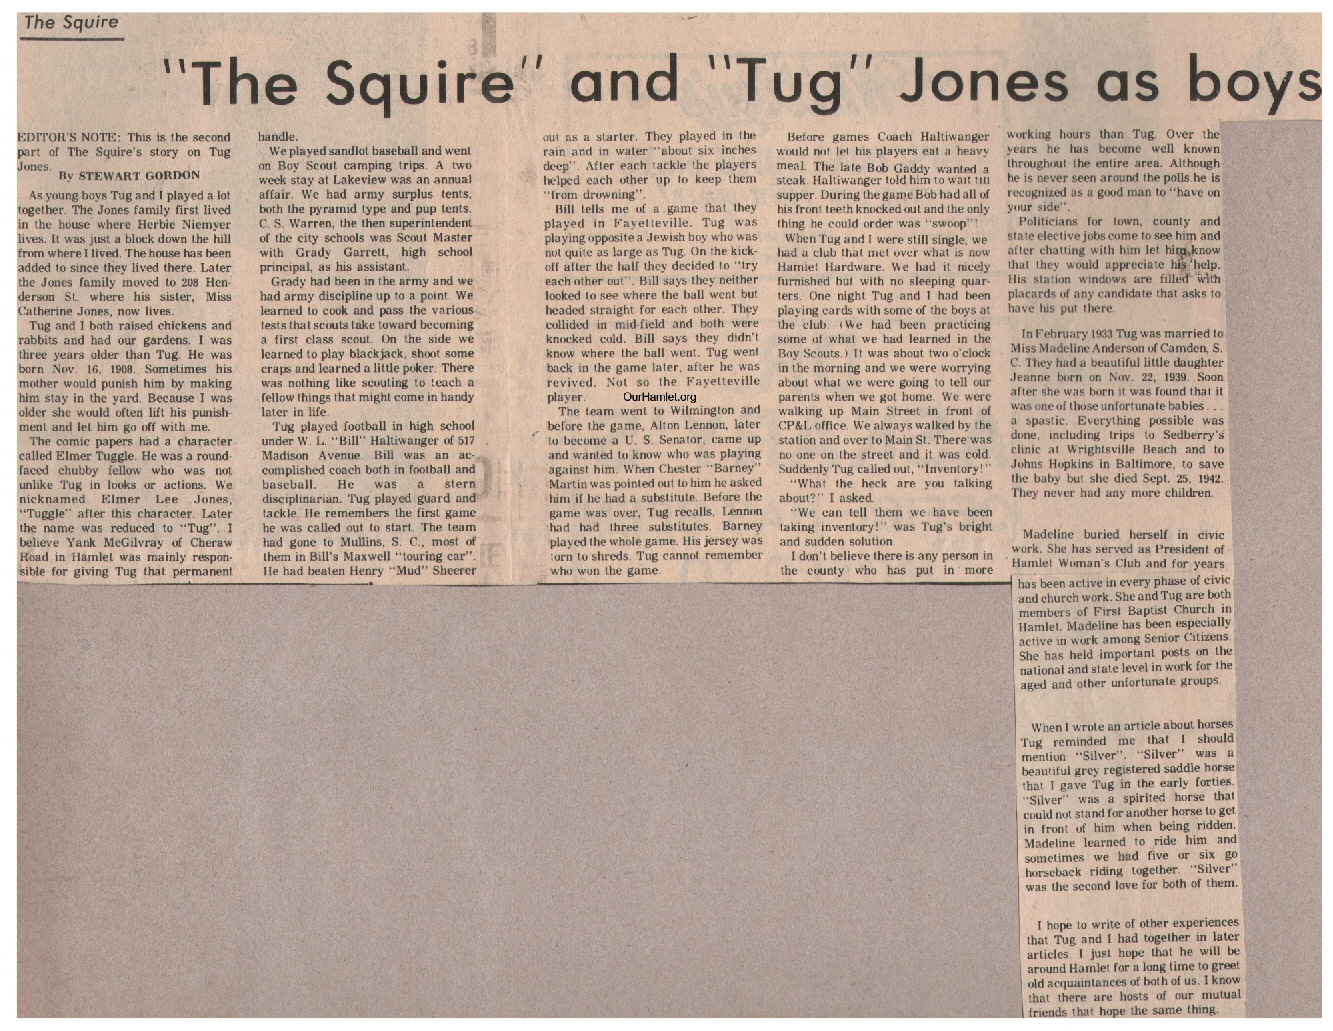 The Squire - Squire and Tug Jones as boys a OH